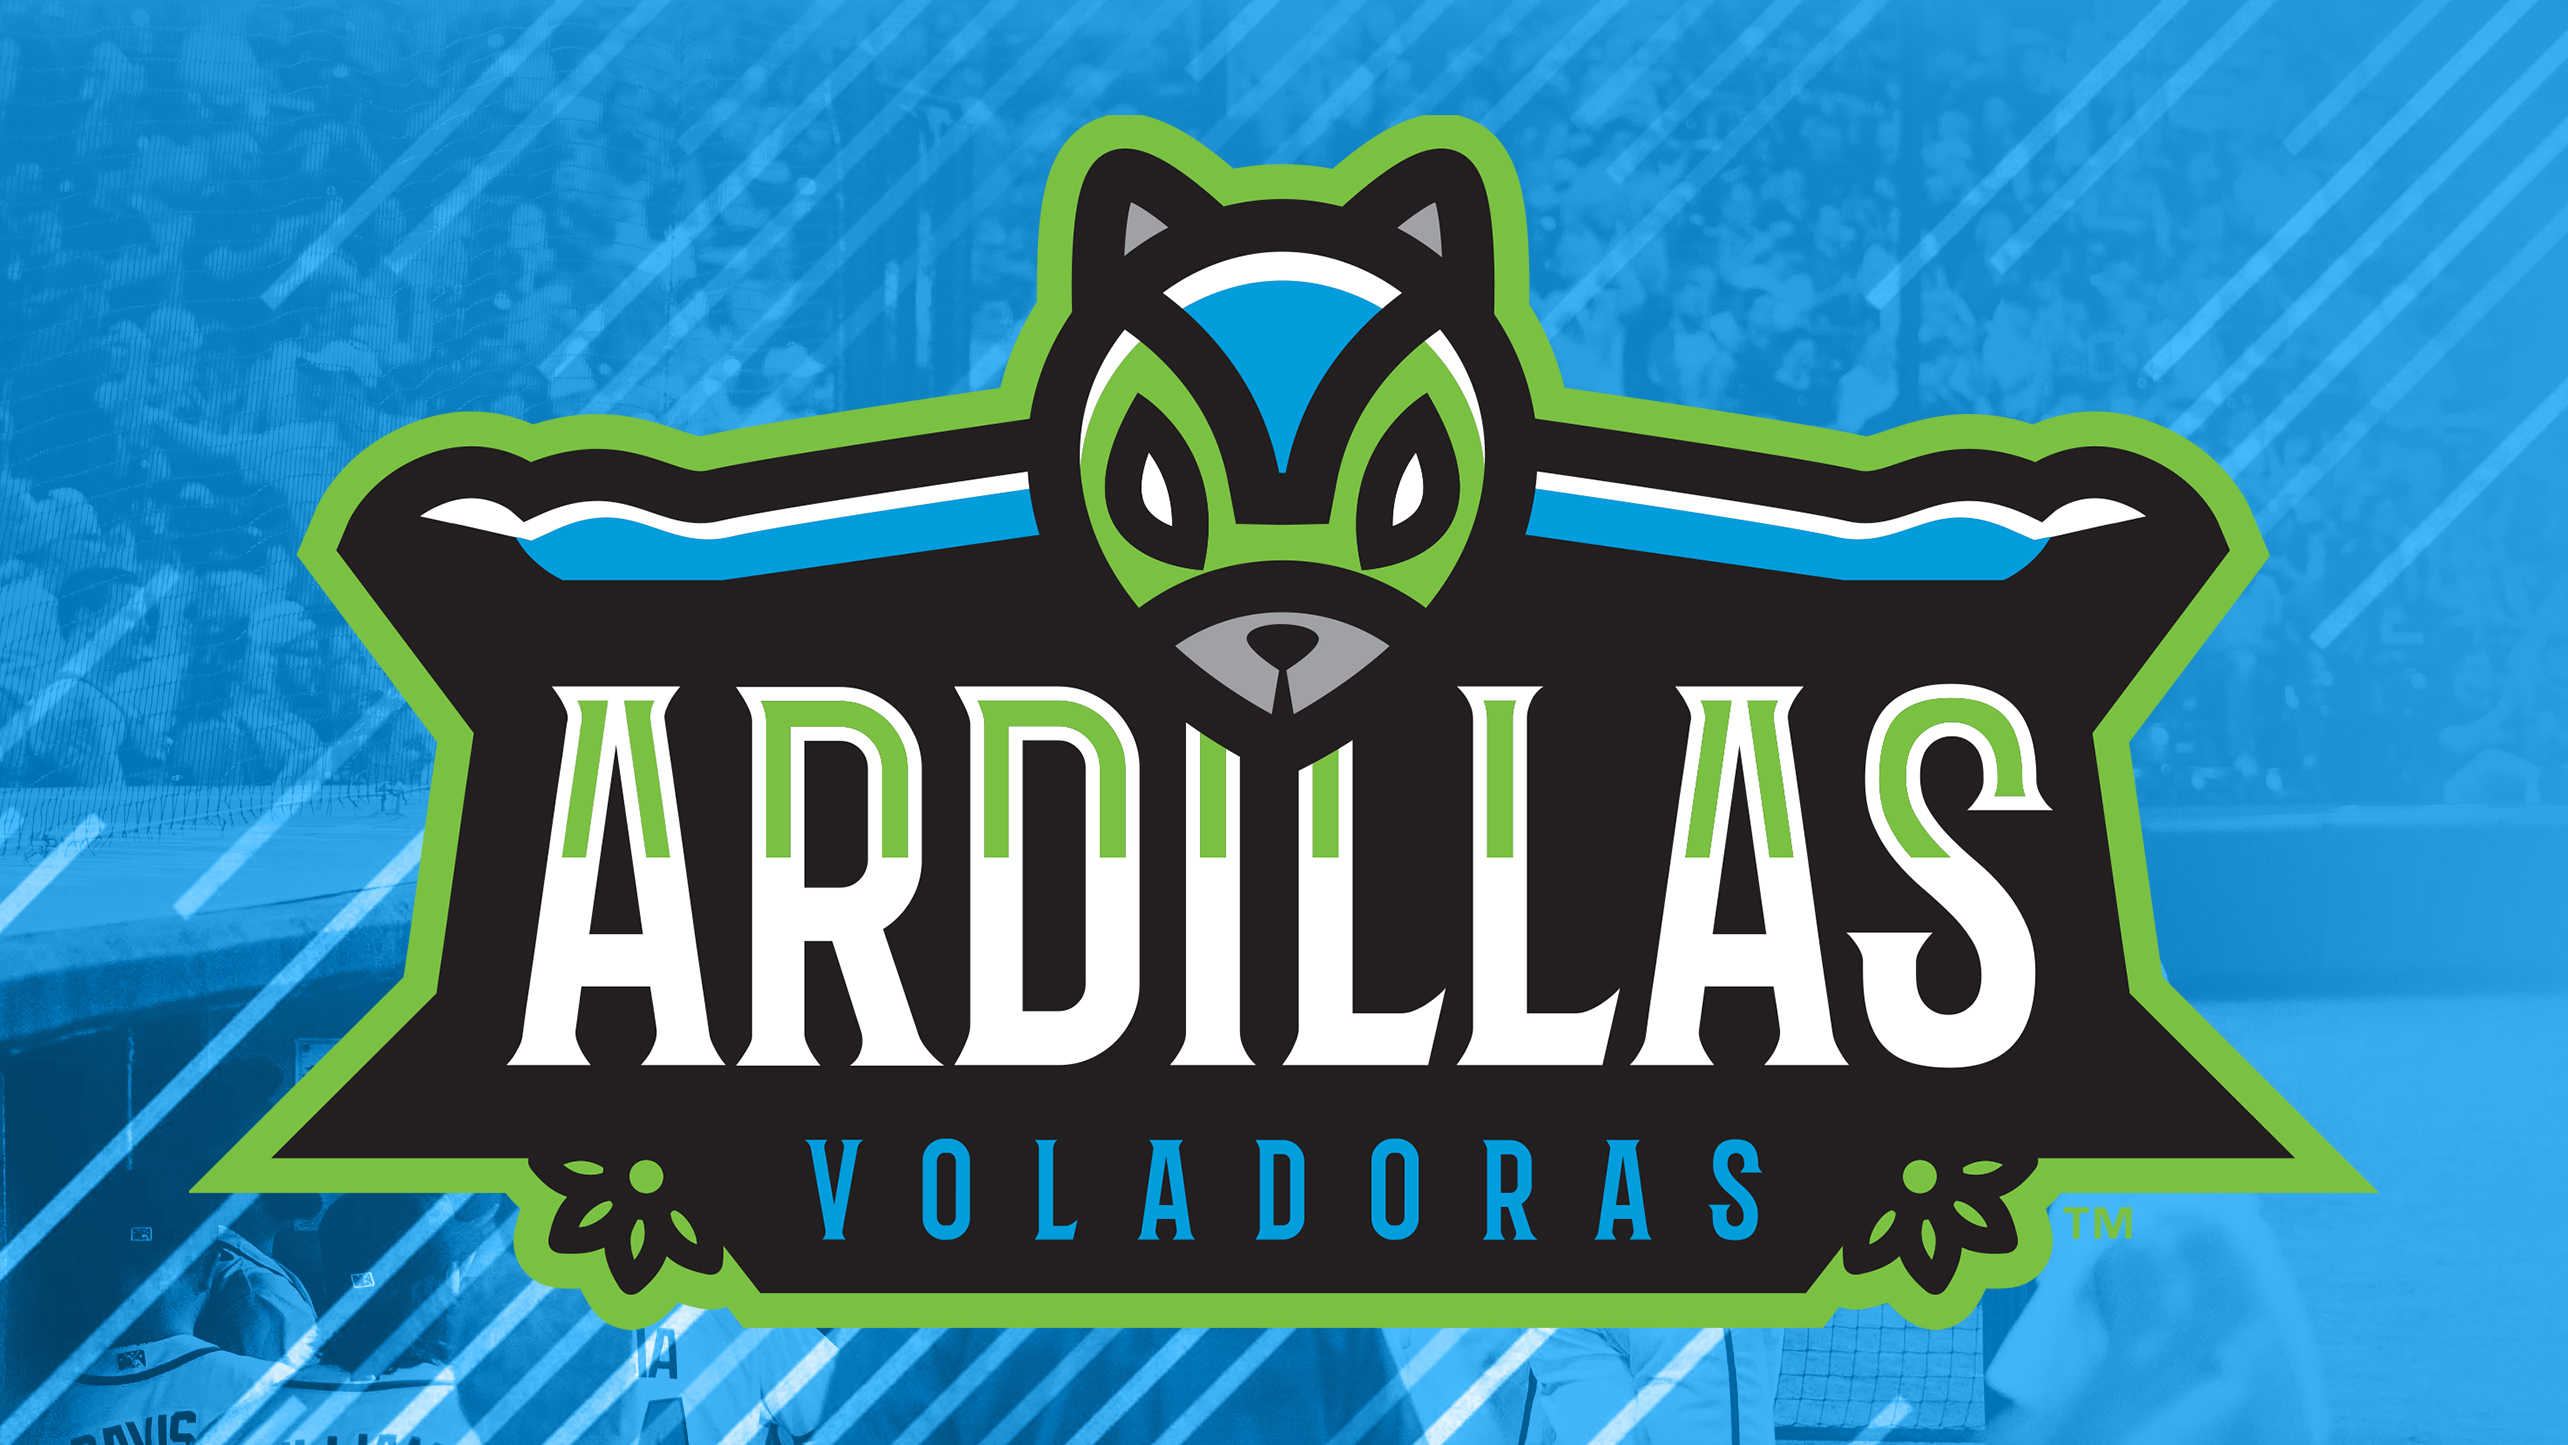 Richmond Flying Squirrels Schedule 2020 Flying Squirrels to become Ardillas Voladoras for Friday home